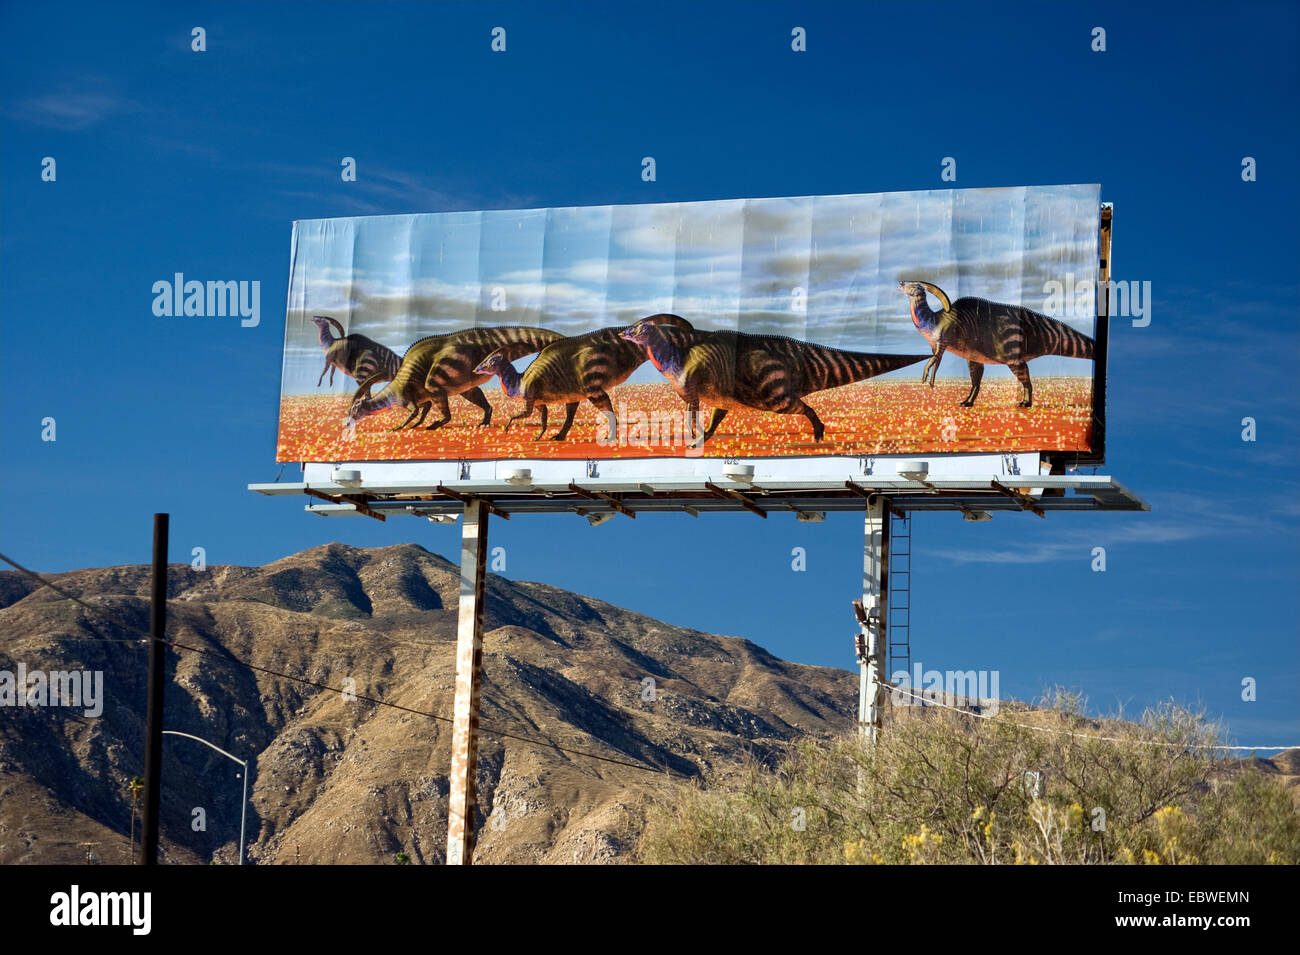 Billboard depicting dinosaurs in desert near Palm Springs, California - Stock Image